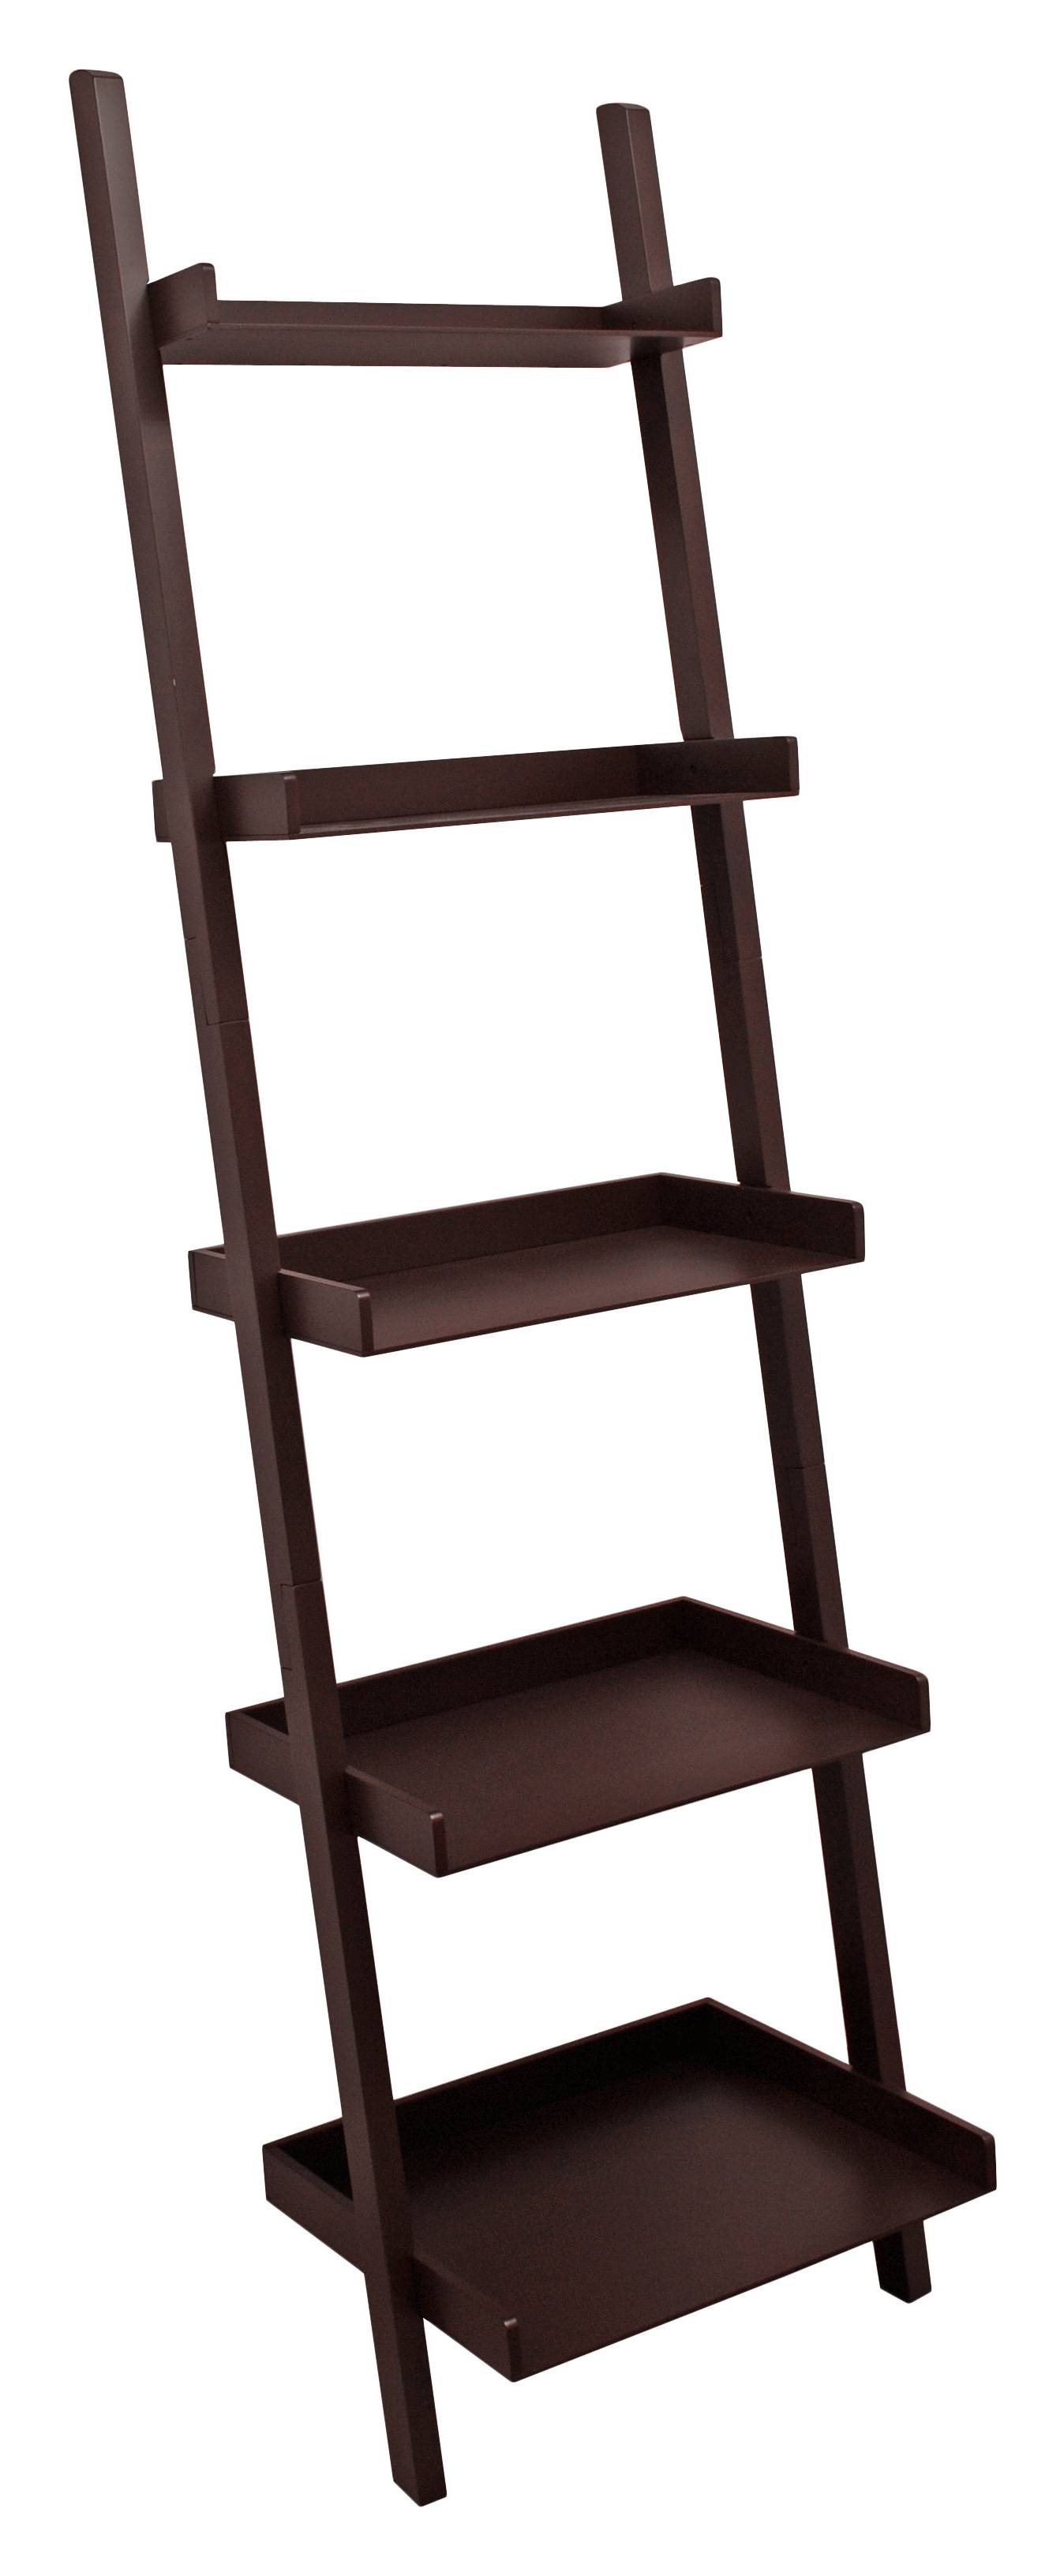 Widely Used Brock Ladder Bookcases Intended For Pfaff 5 Tier Ladder Bookcase (View 17 of 20)